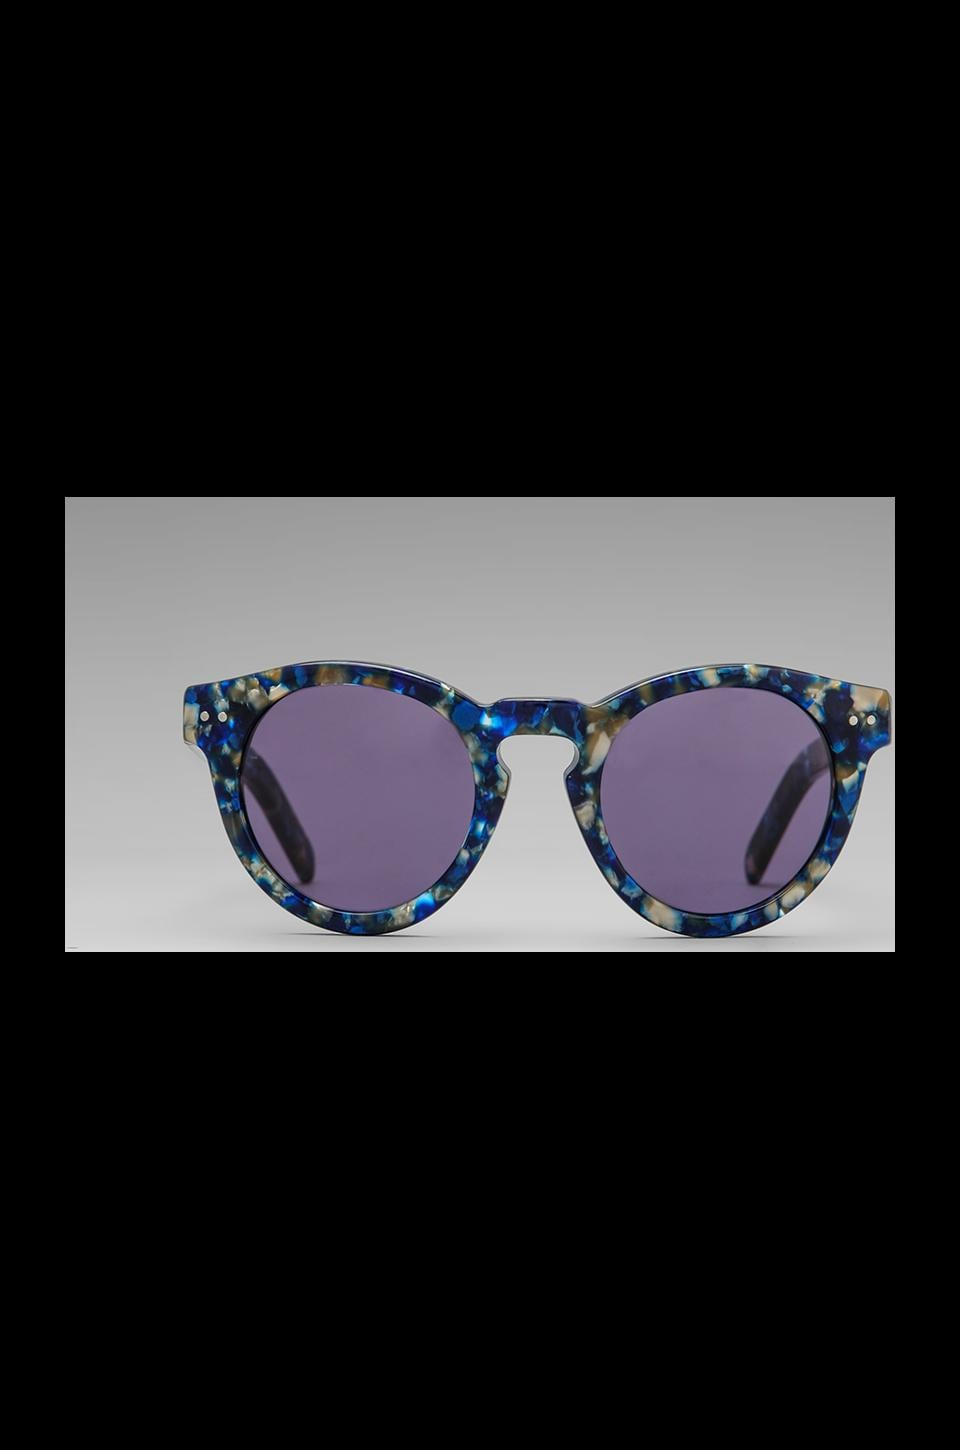 House of Harlow 1960 House of Harlow Carmen Sunglasses in Sapphire